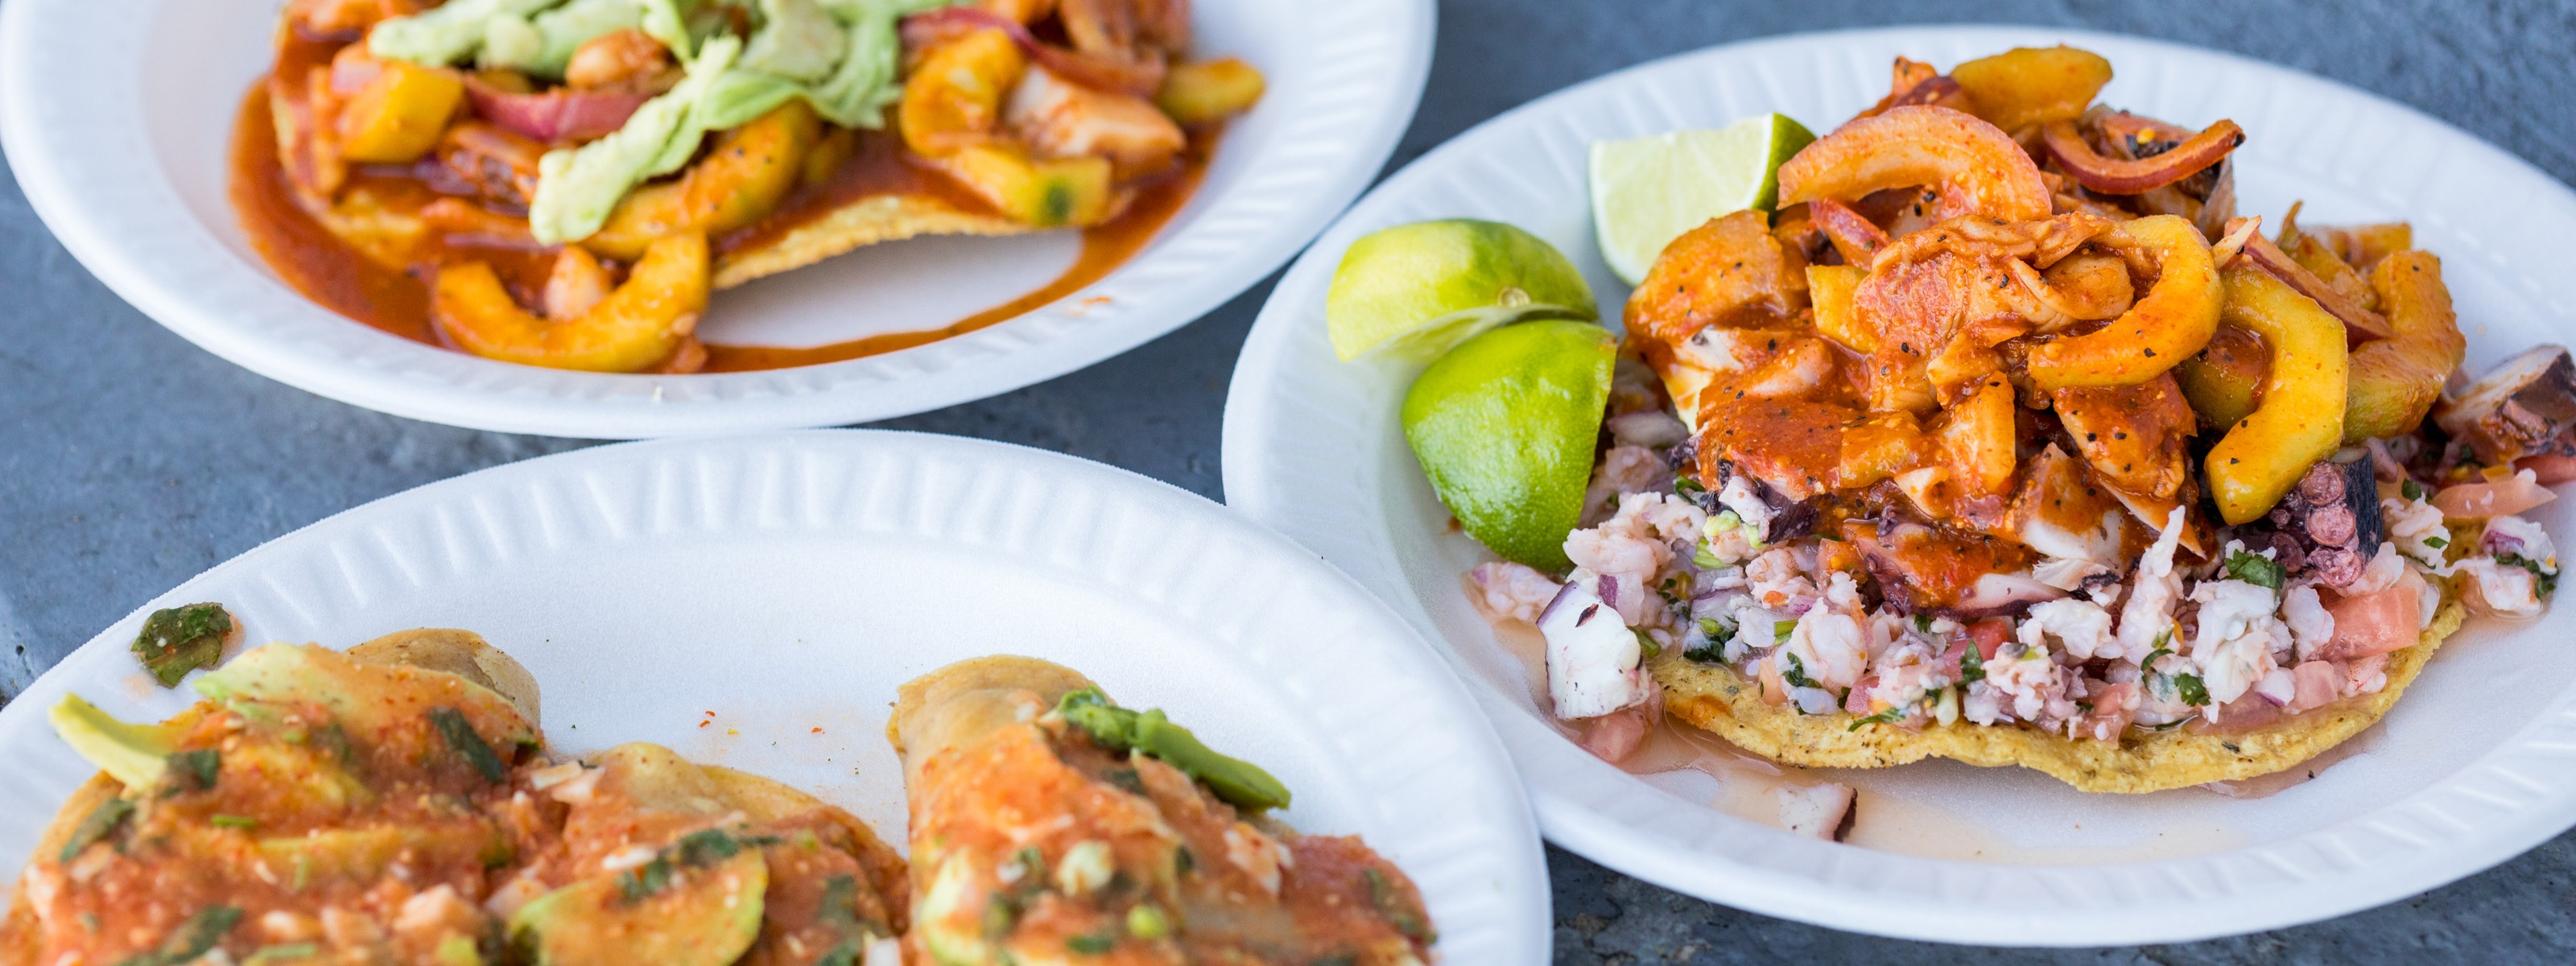 Where To Get Mexican Takeout & Delivery In LA - Los Angeles - The Infatuation